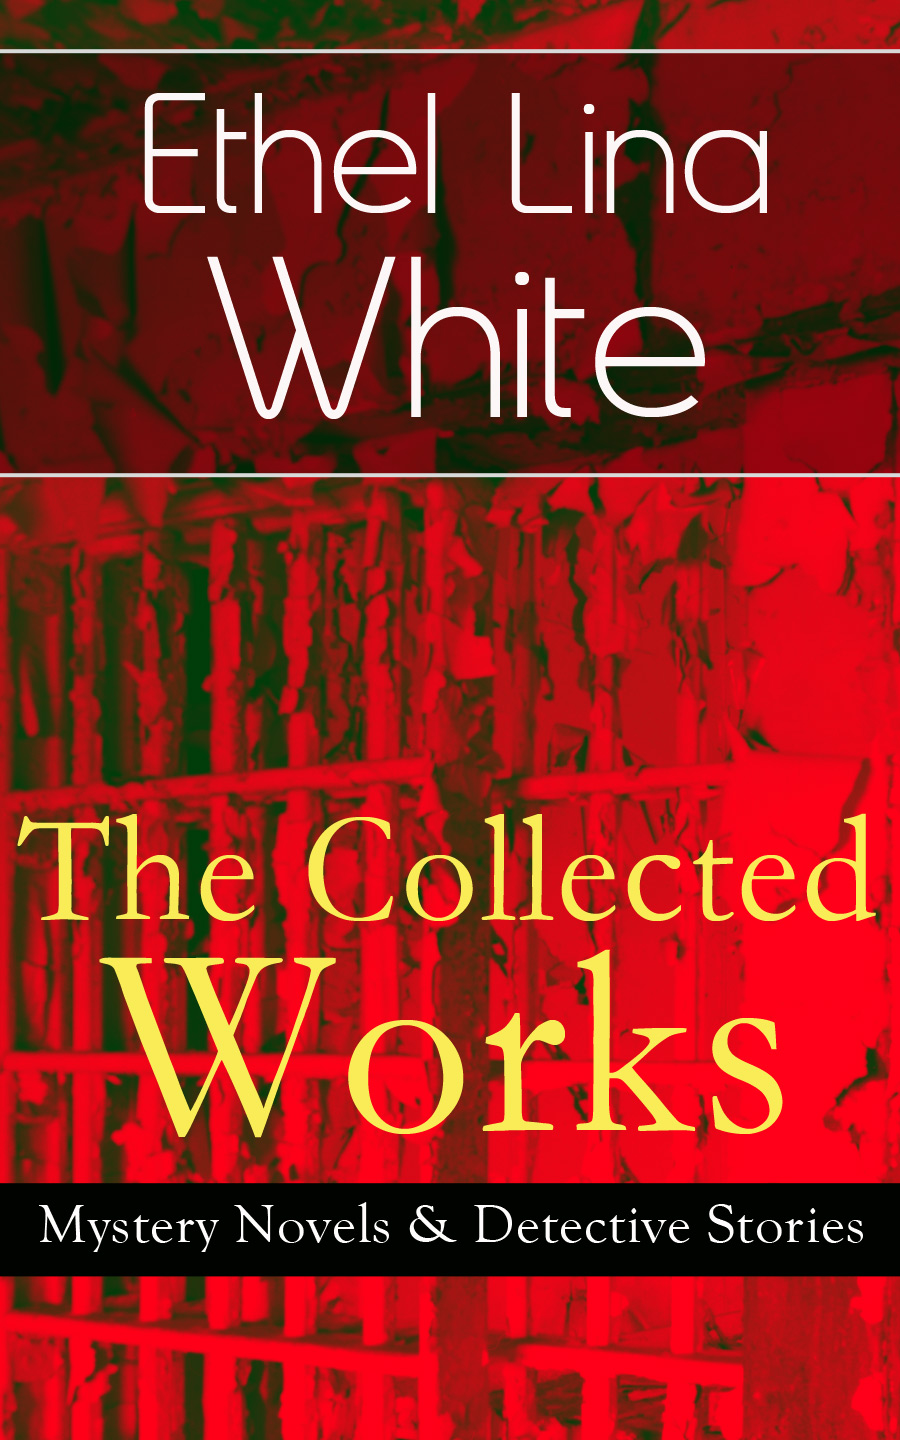 цена на Ethel Lina White The Collected Works of Ethel Lina White: Mystery Novels & Detective Stories